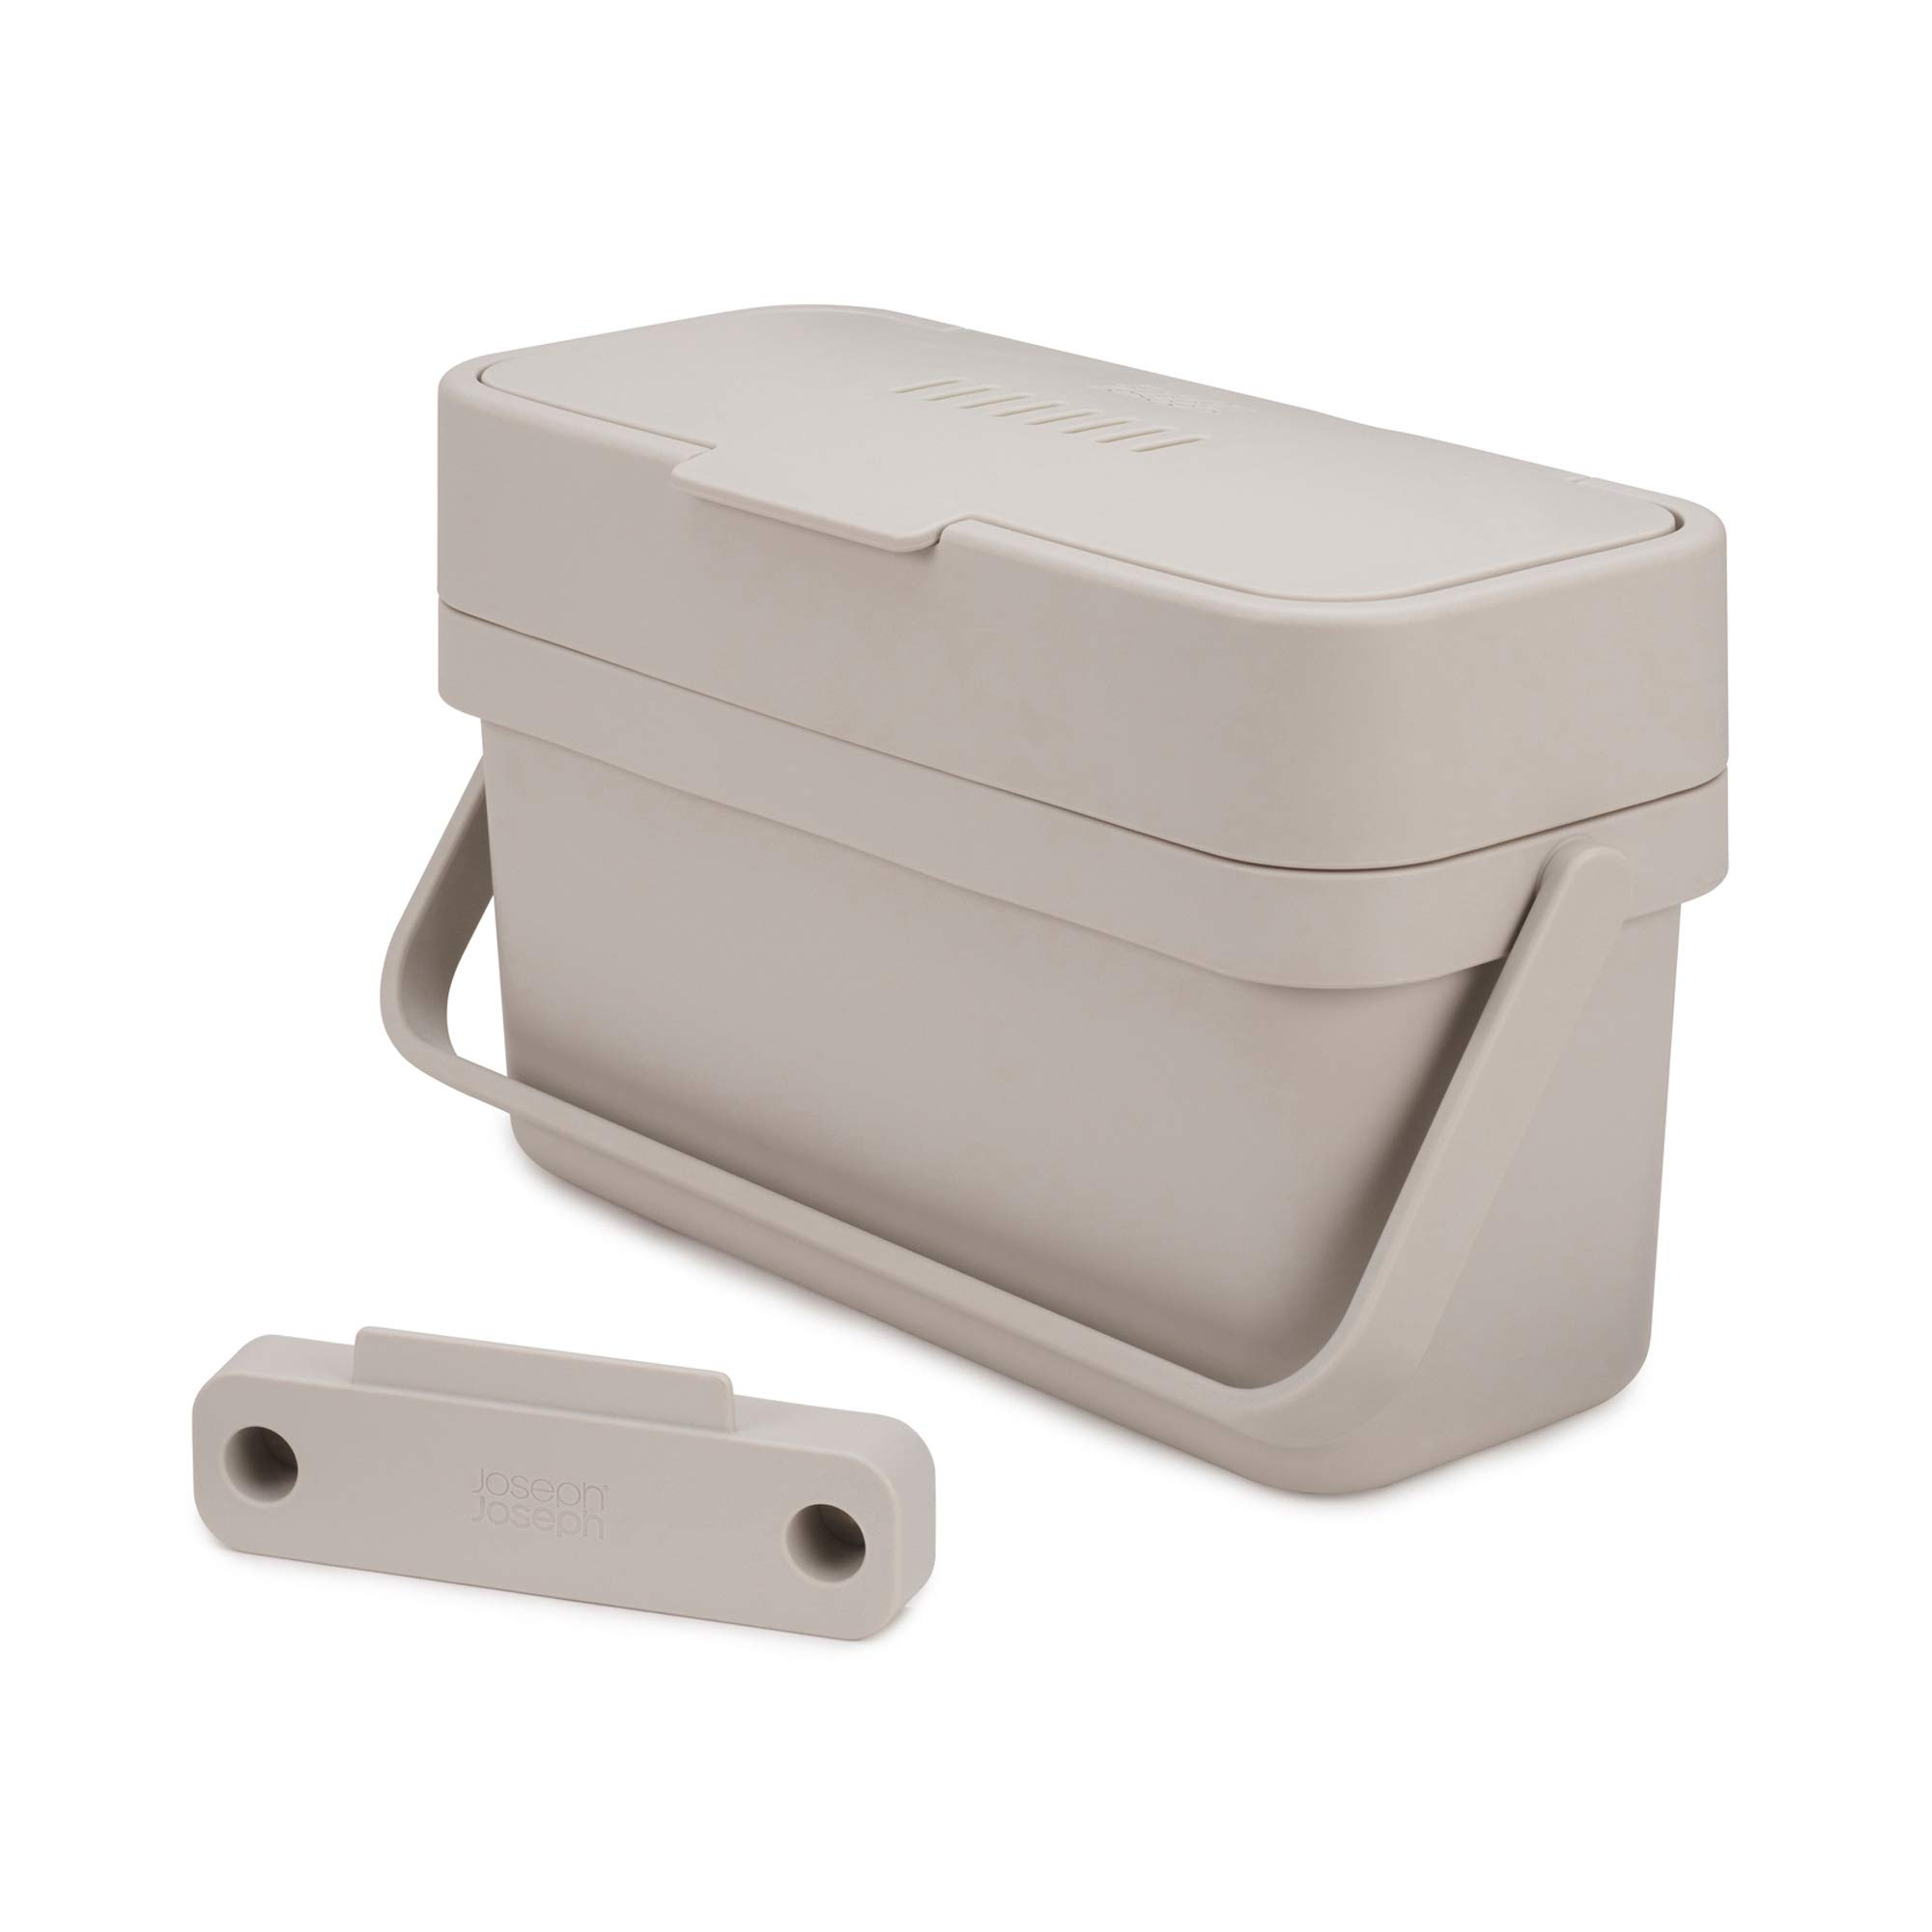 Joseph Joseph 30046 Compo Easy-Fill Compost Bin Food Waste Caddy with Adjustable Air Vent, 1 gallon / 4 liters, Stone product image